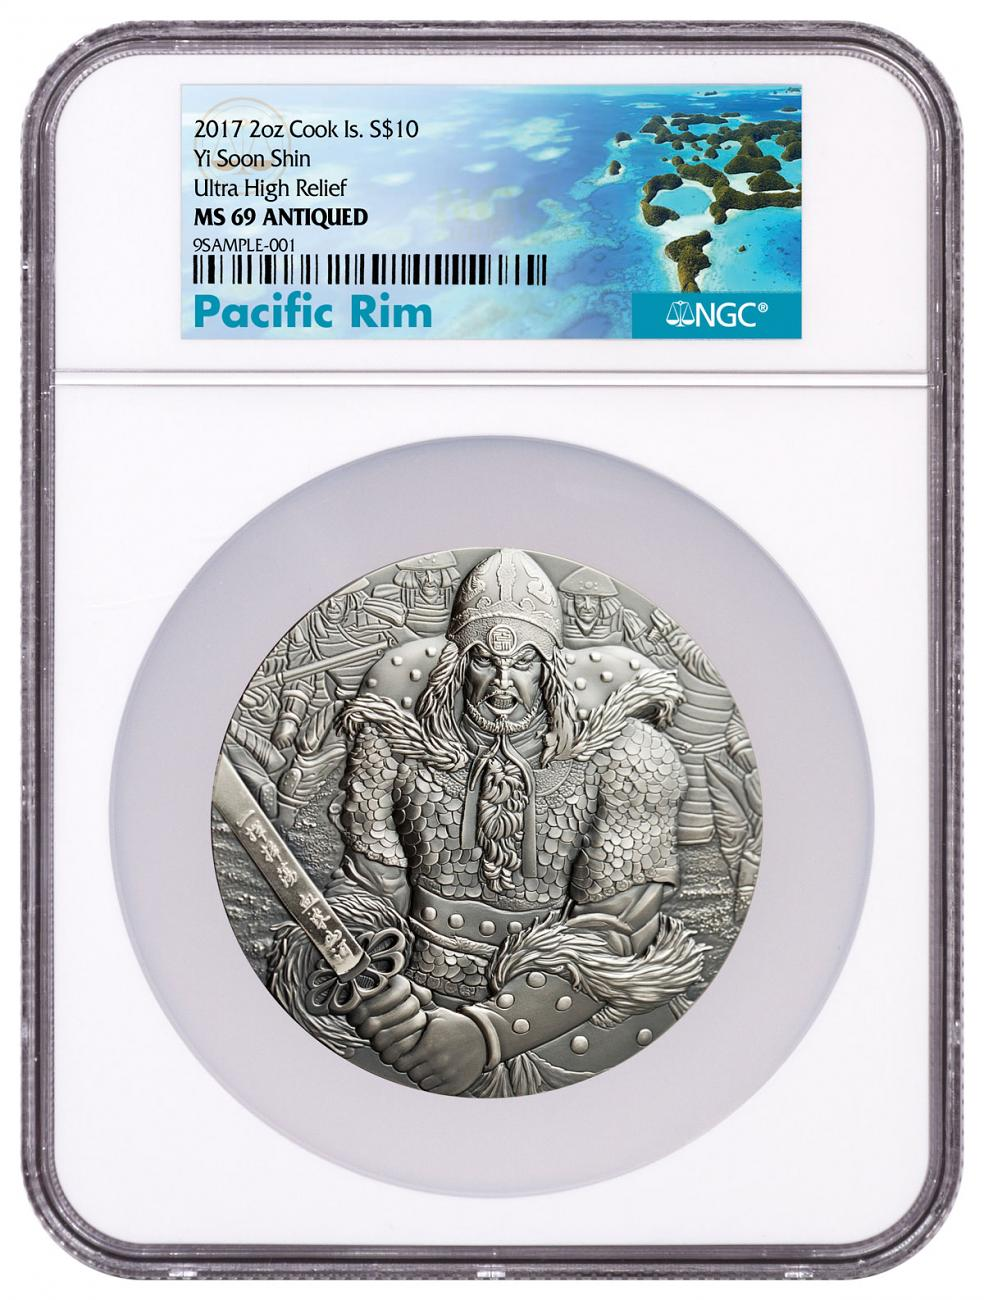 2017 Cook Islands Yi Soon Shin 2 oz Silver Antiqued $10 Coin NGC MS69 Exclusive Pacific Rim Label with Comic Book